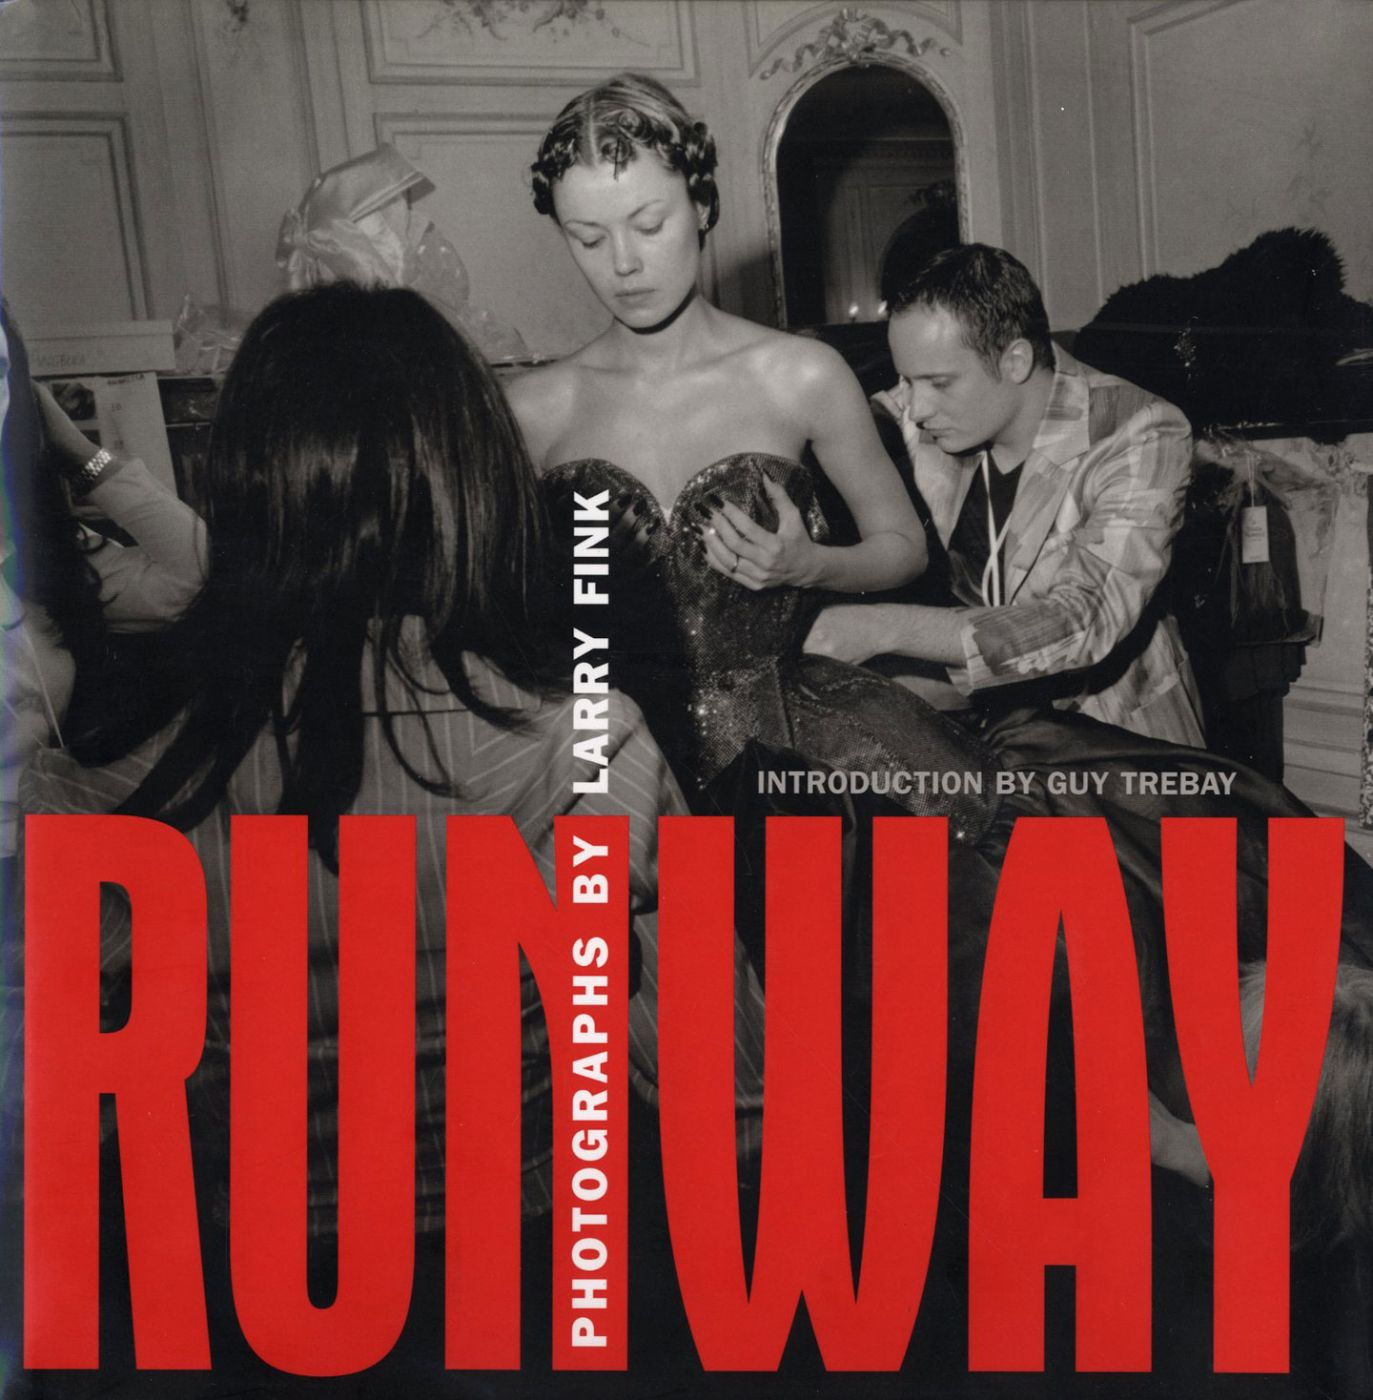 Runway: Photographs by Larry Fink